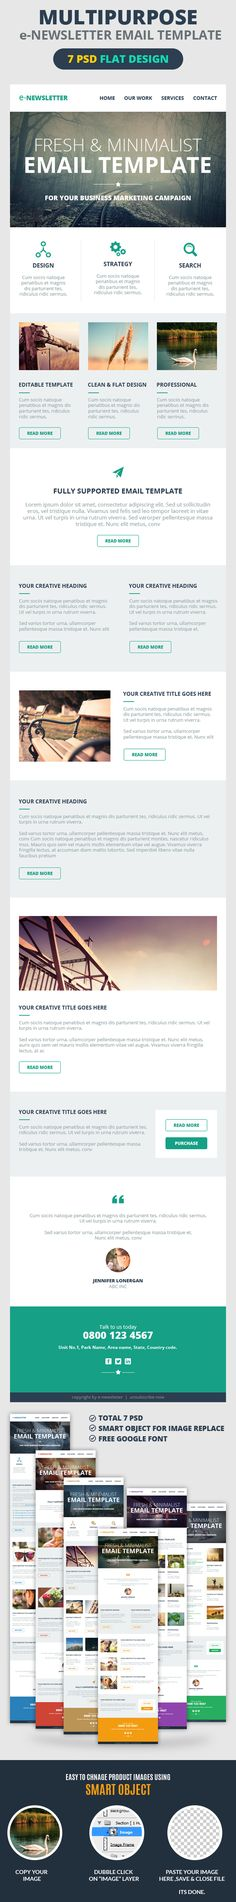 A set of 7 psds for Flat designed Email Templates which can be use for any kind of business like Travel, Corporate, E-commerce, Retail, Photographer, Artist, Designer & Freelancer. Design is clean and professional. Layers are well organized, you can easily customize its design & color as per your need.  FEATURES:  7 Different layout options Clean & Professional Design Multipurpose Use Free Google Font